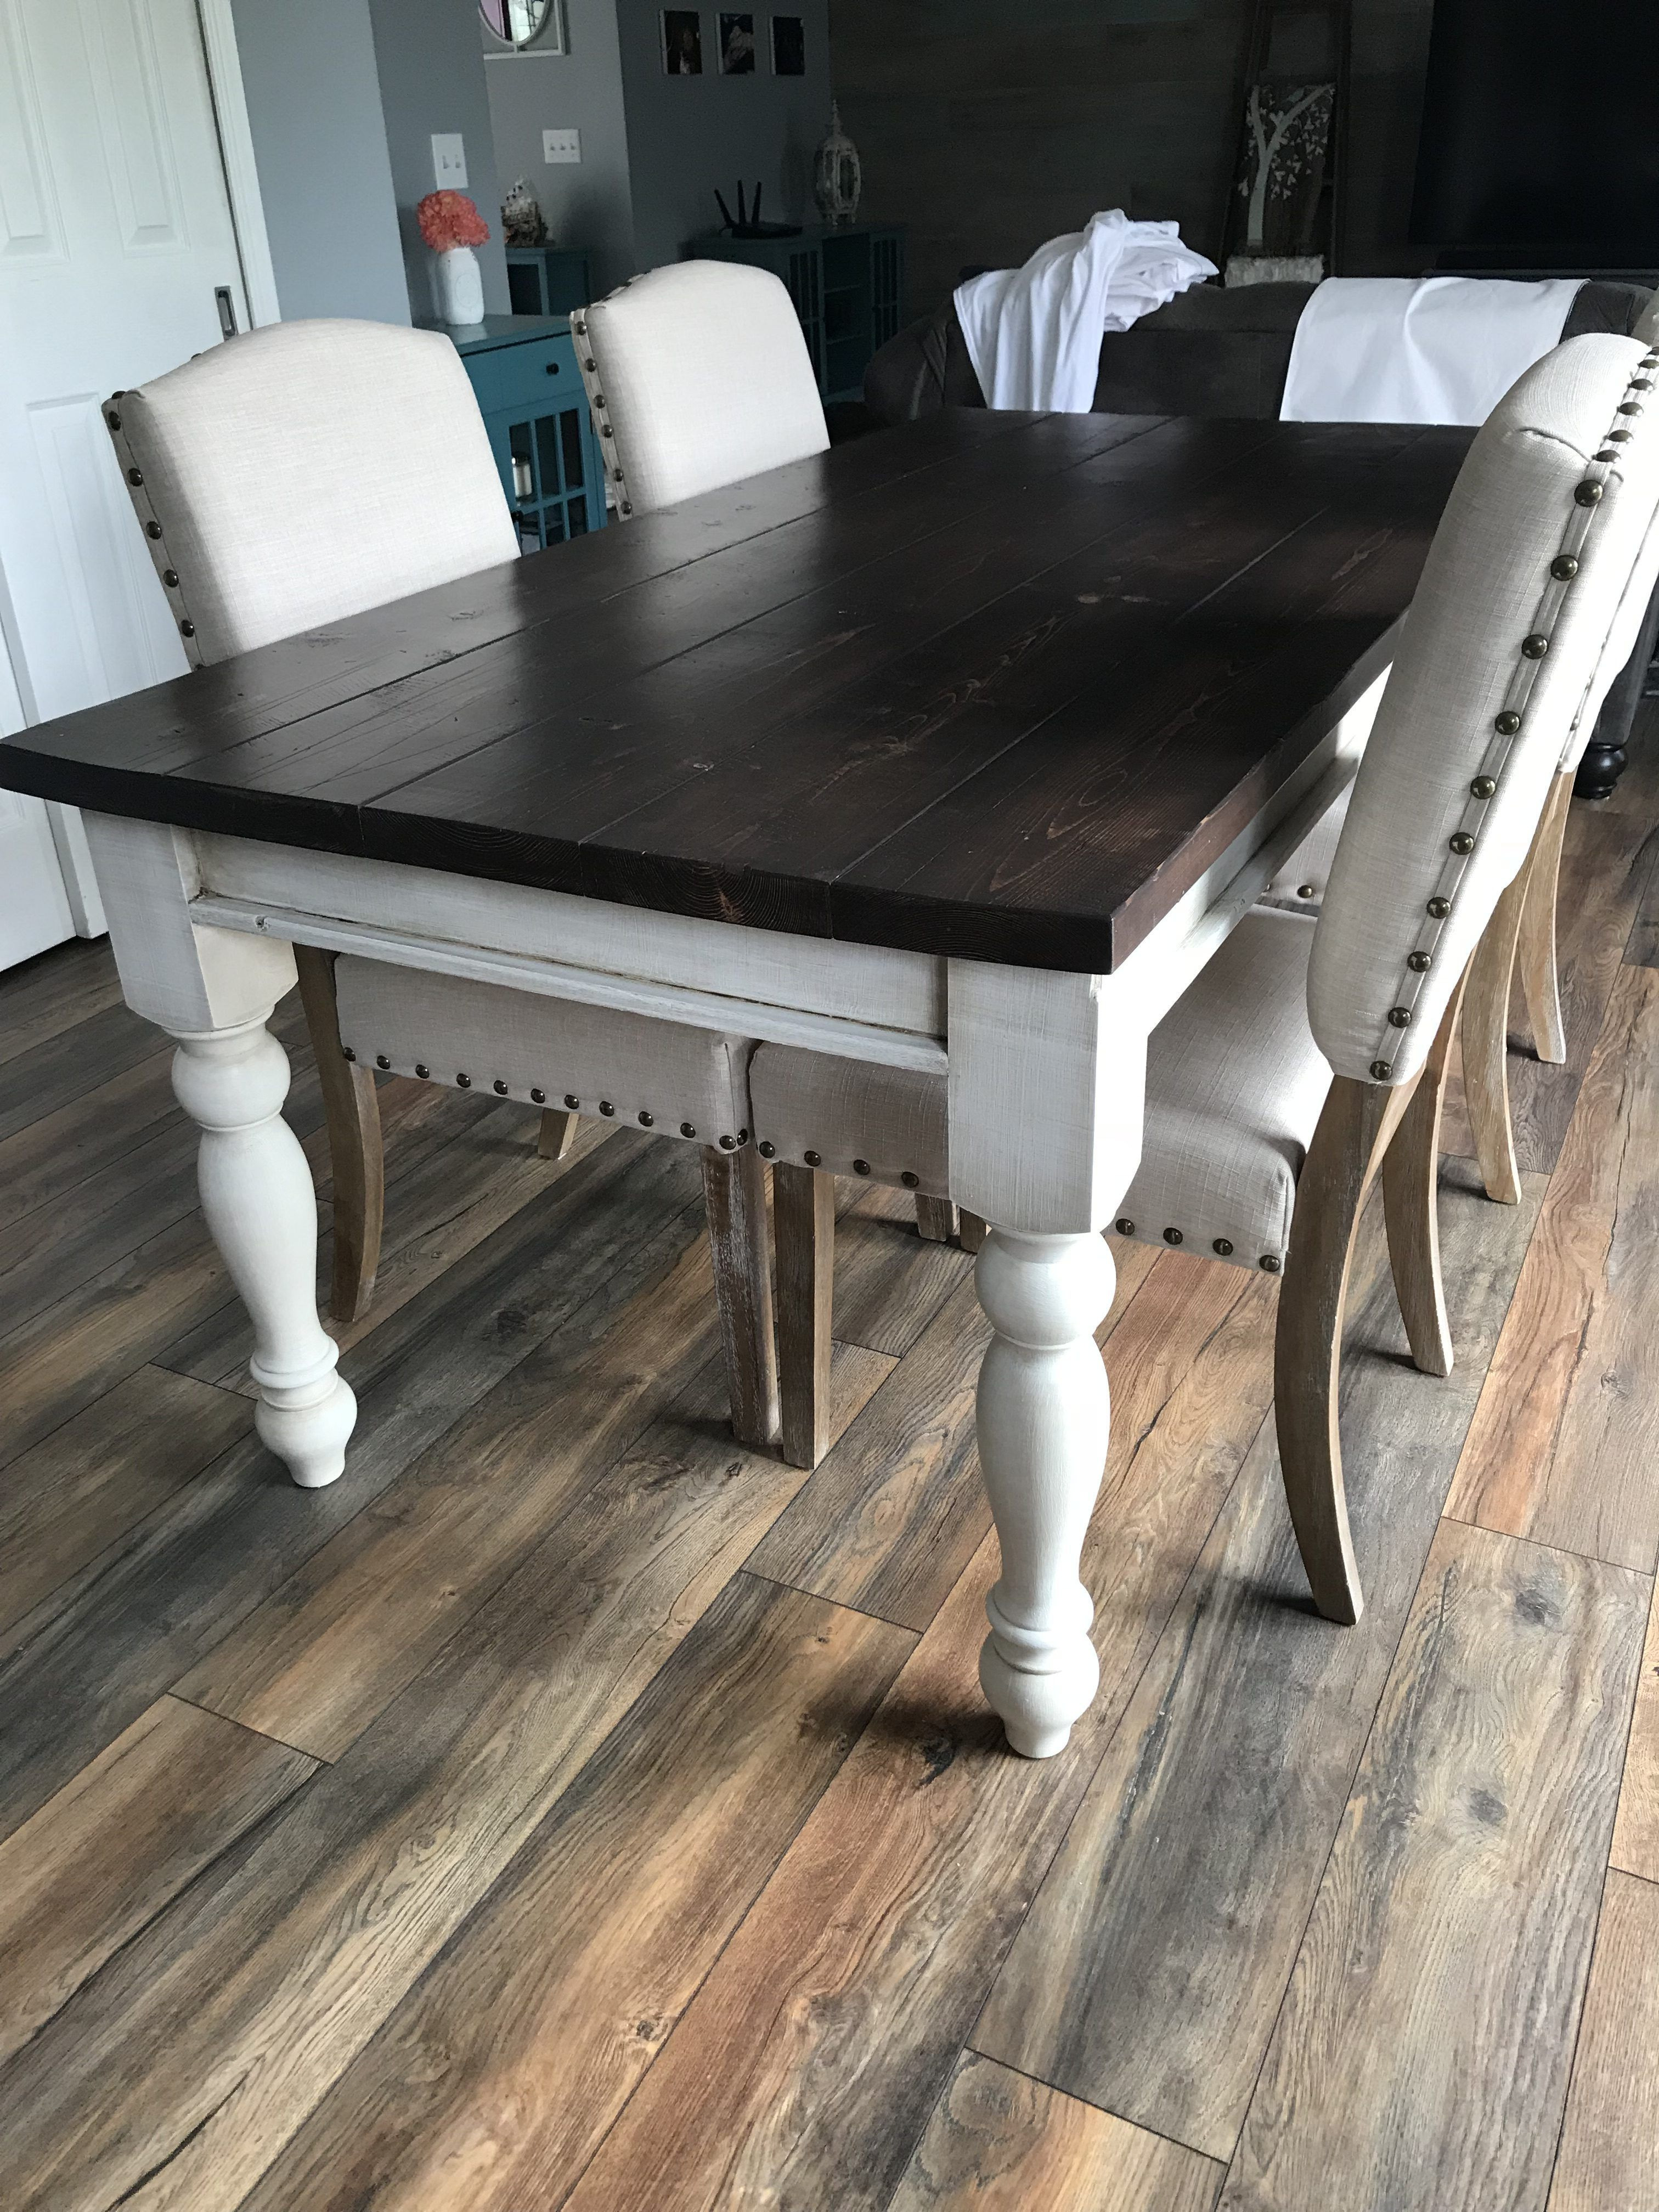 How to Build A Simple Home Awesome How to Build A Simple Farmhouse Table In 7 Easy Steps